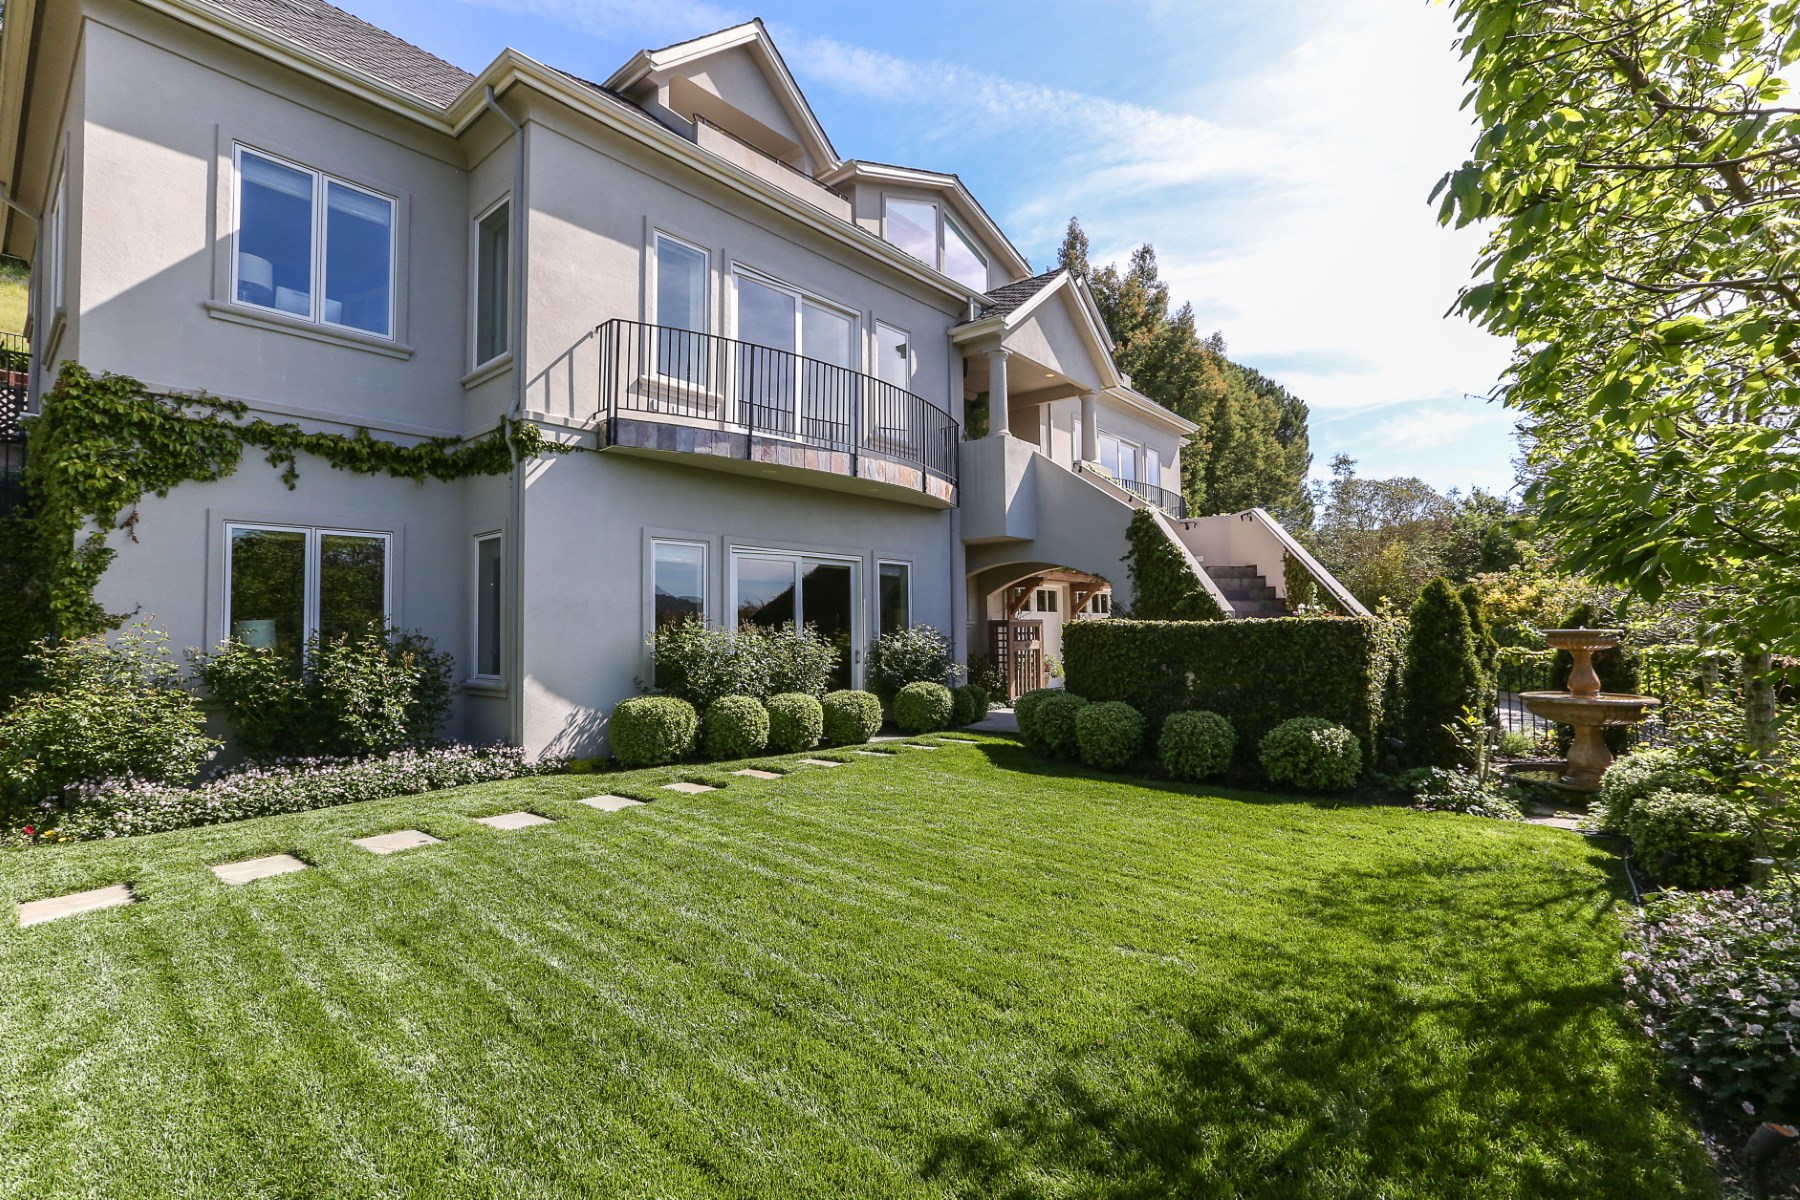 Single Family Home for Sale at Recently-Built View Home 17 Fay Dr Kentfield, California, 94904 United States